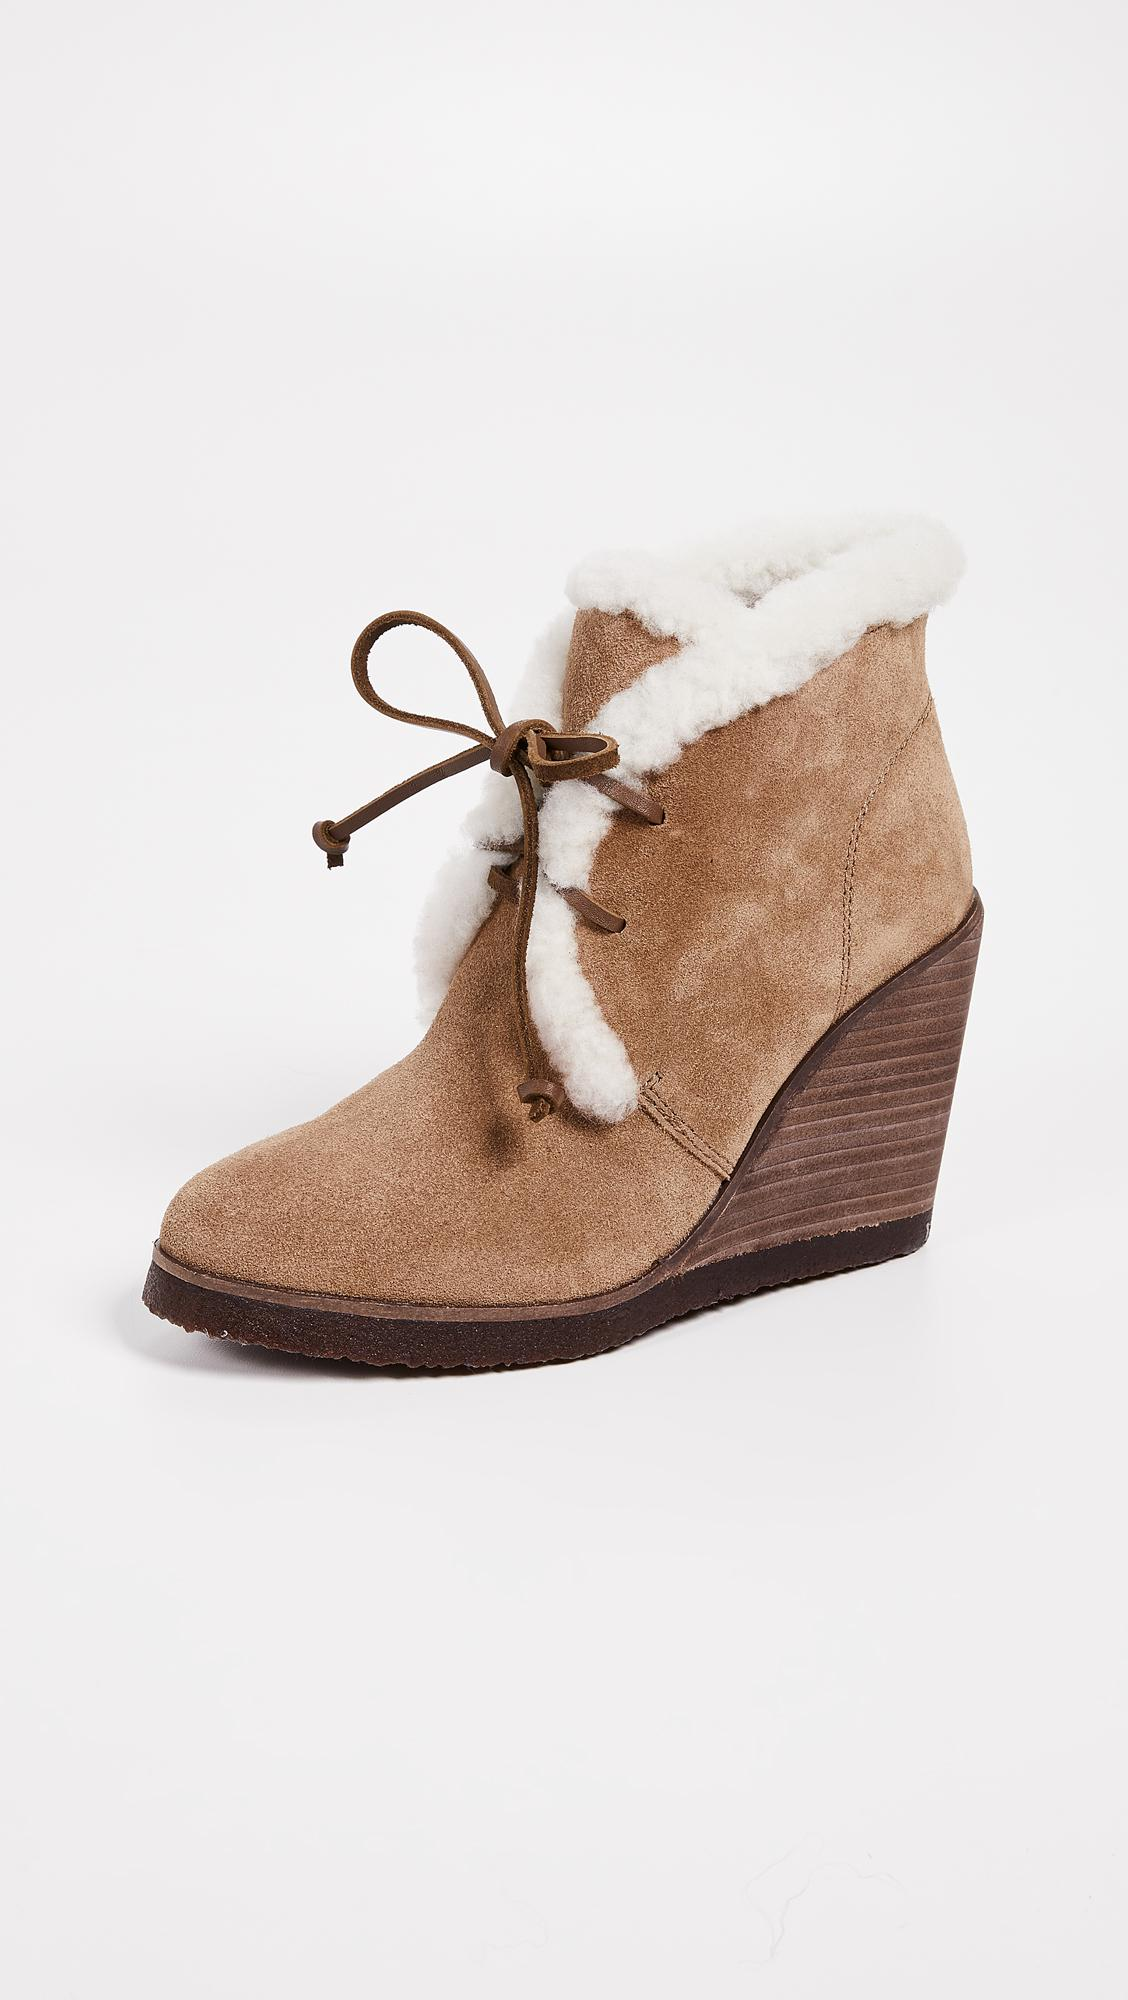 fab661a2cb62 Lyst - Splendid Catalina Ankle Boot in Brown